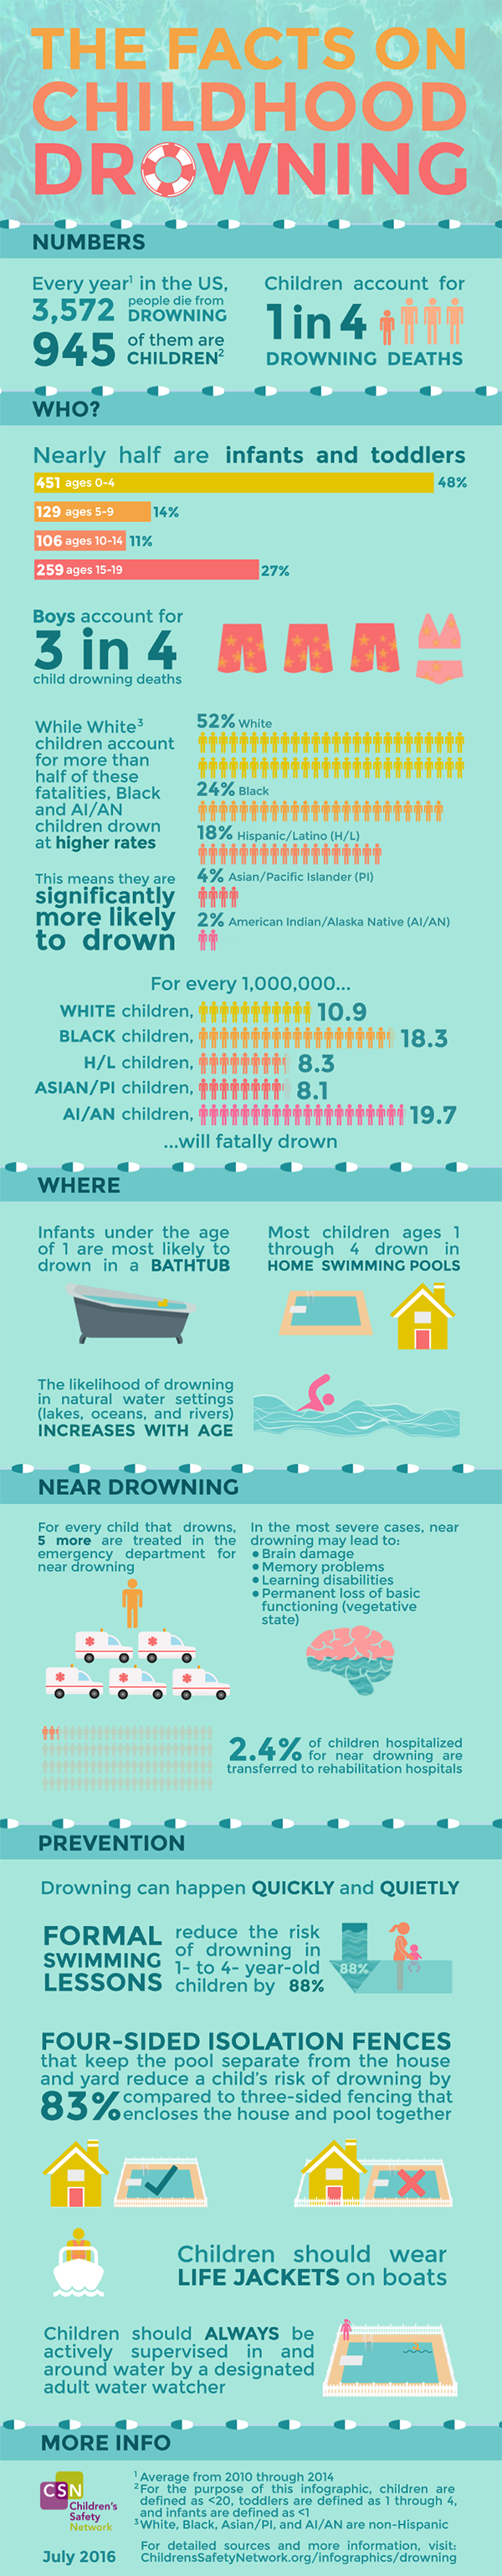 This infographic from the Children's Safety Network covers the demographics of drownings, locations of drownings, near drowning, and prevention.